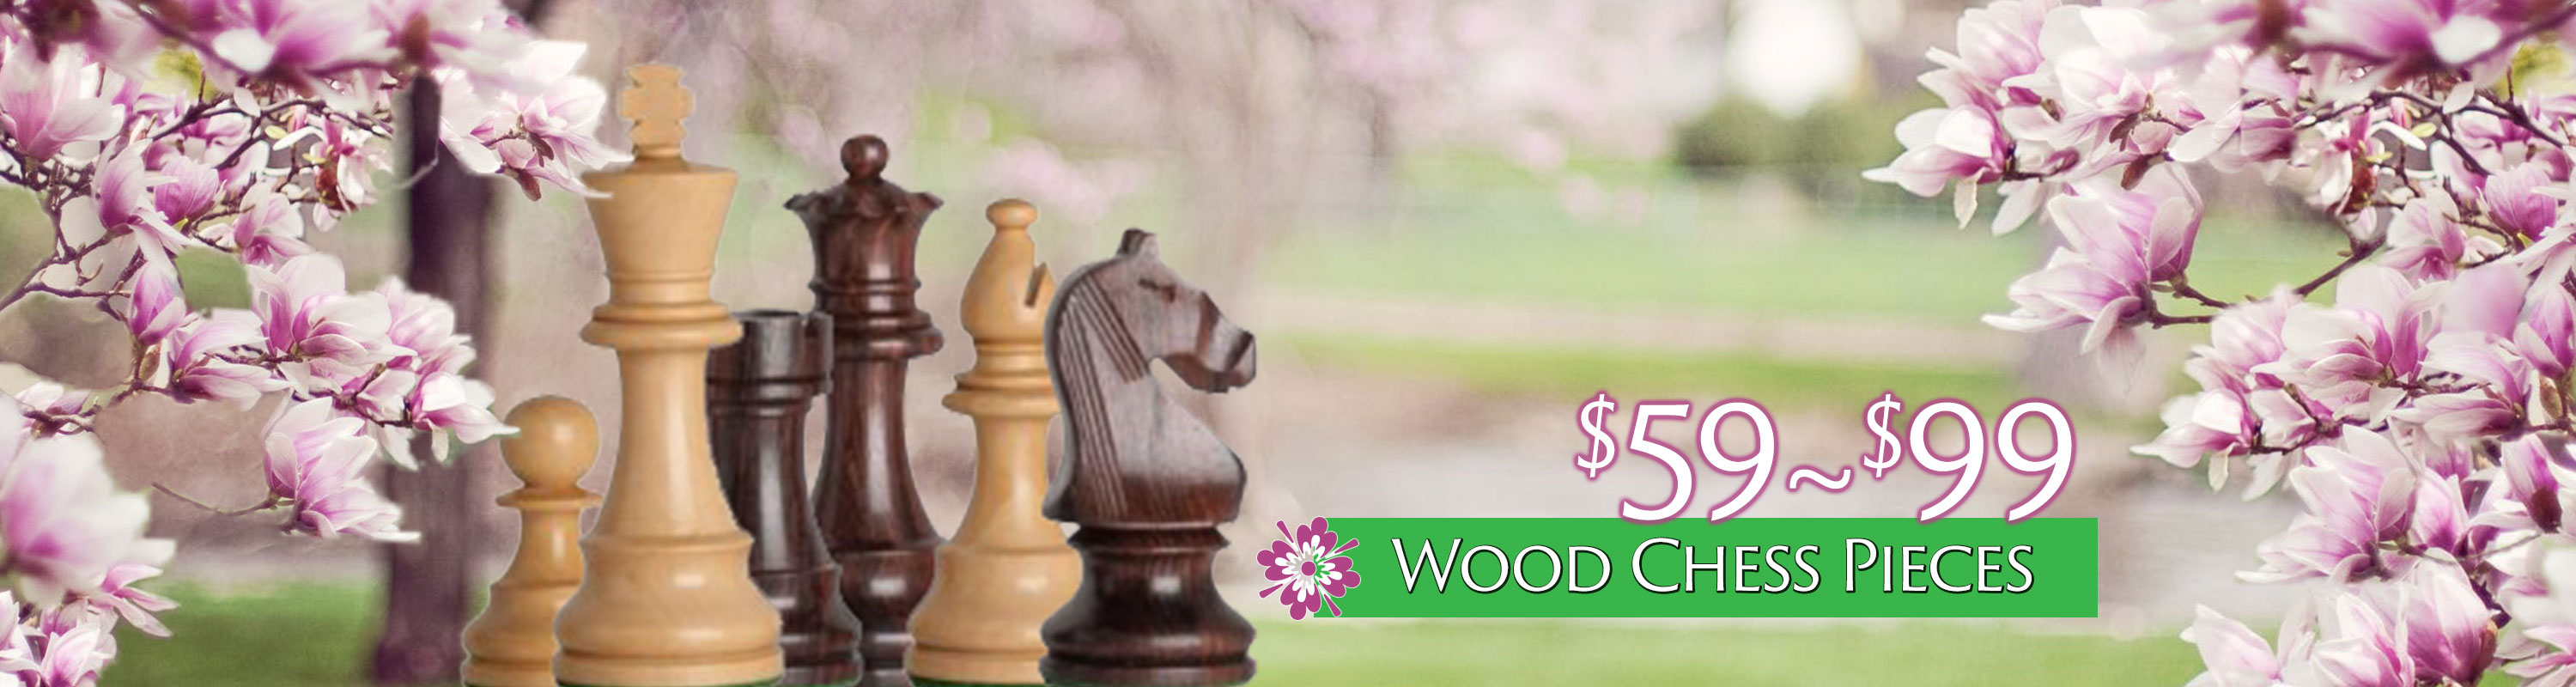 Wood Chess Pieces $59 - $99